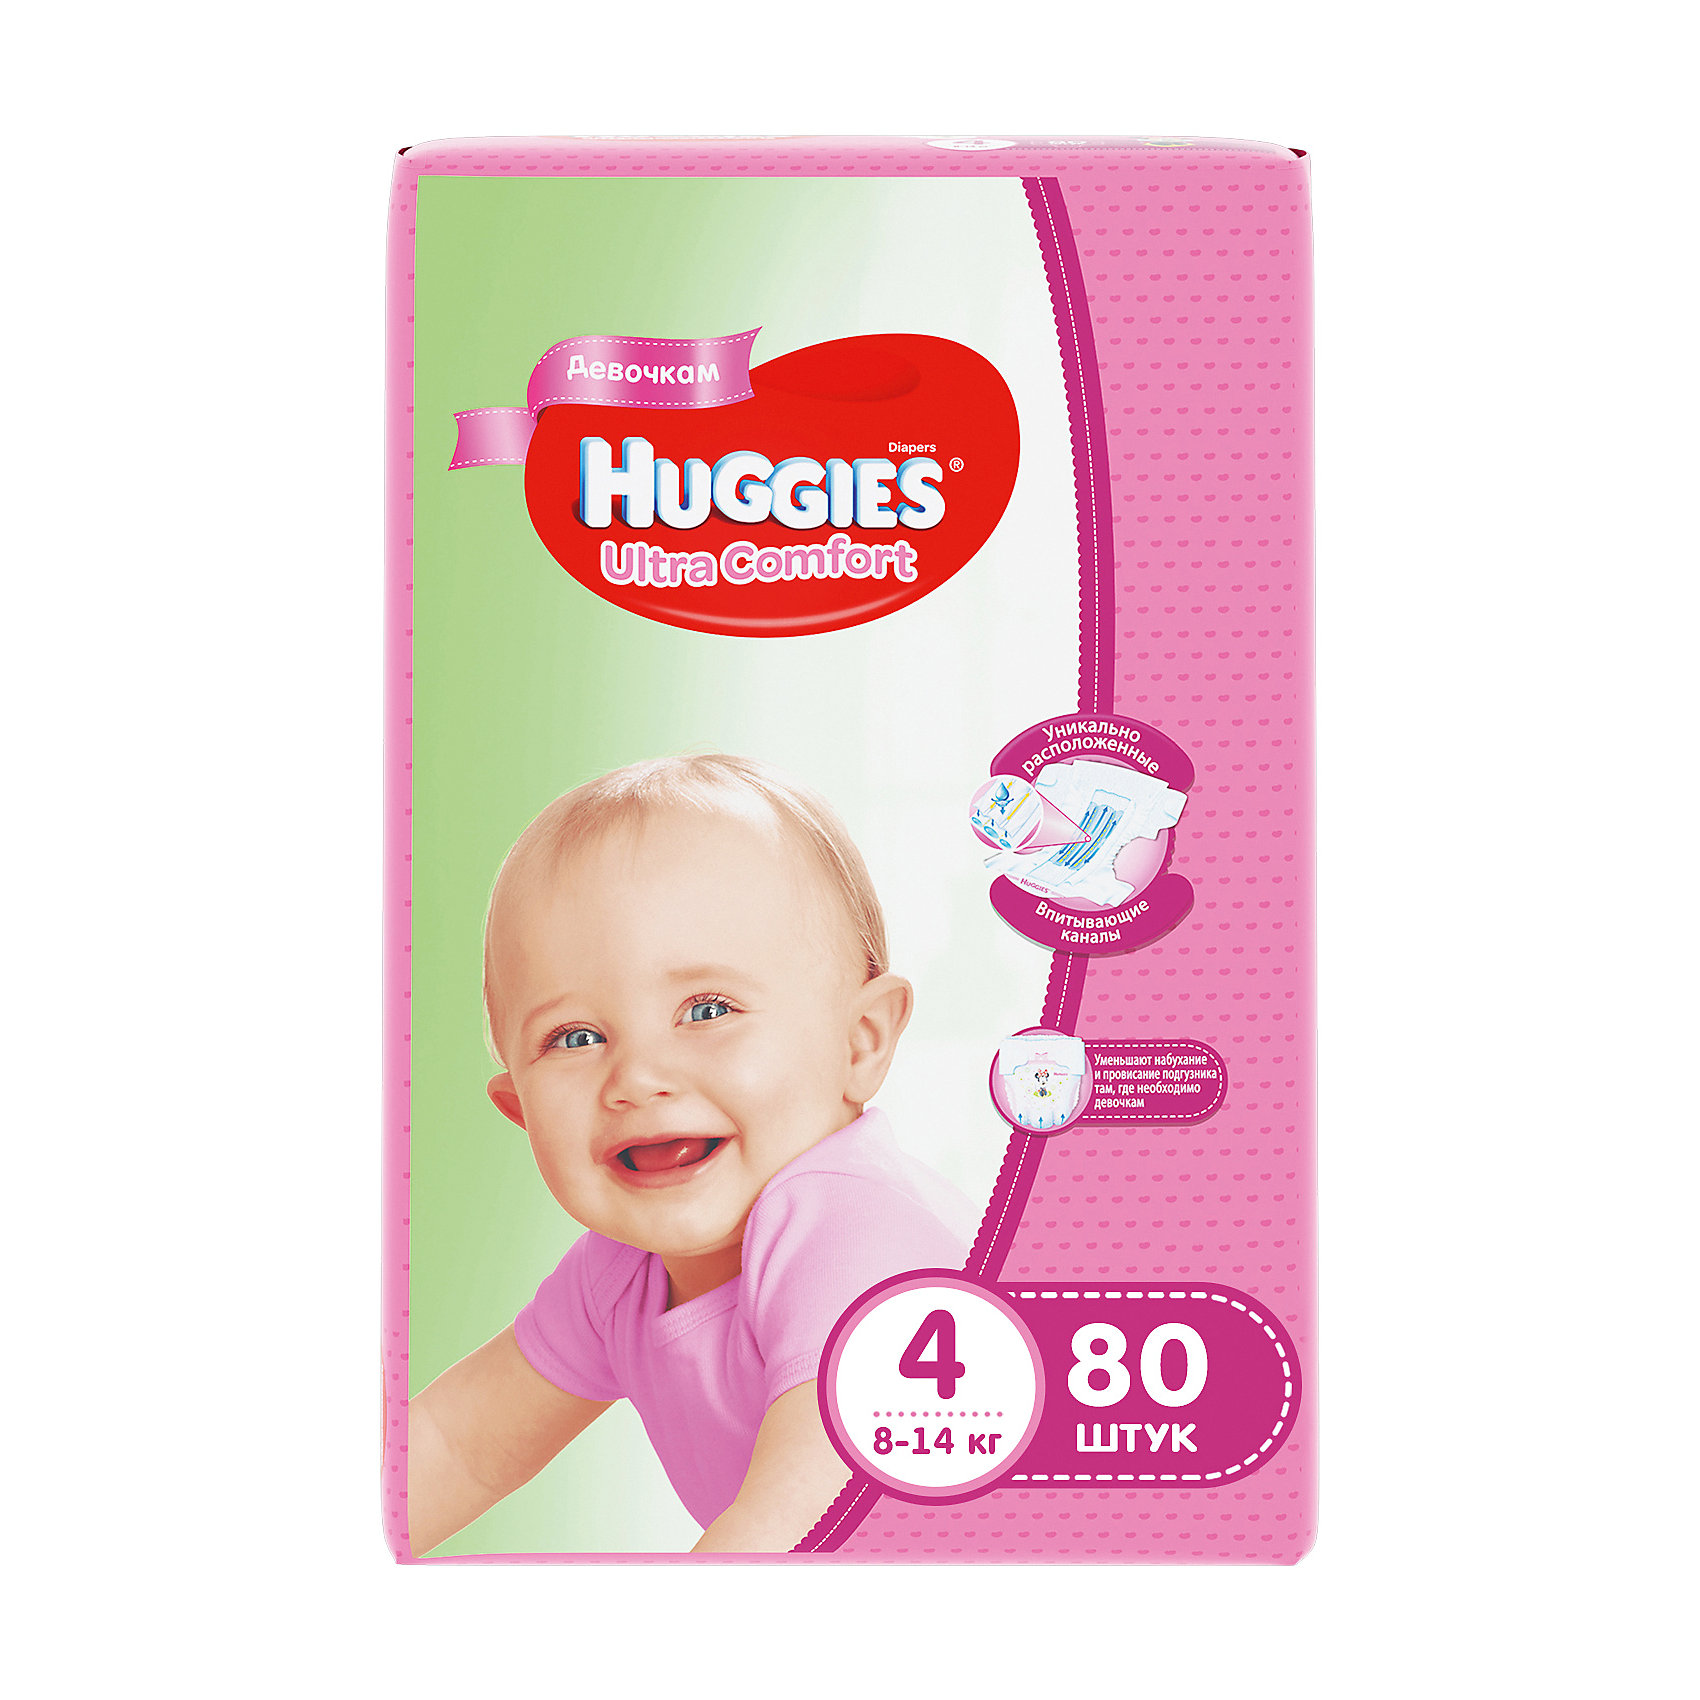 ���������� Huggies Ultra Comfort ��� ������� Giga Pack (4) 8-14 ��, 80 ��. (HUGGIES)